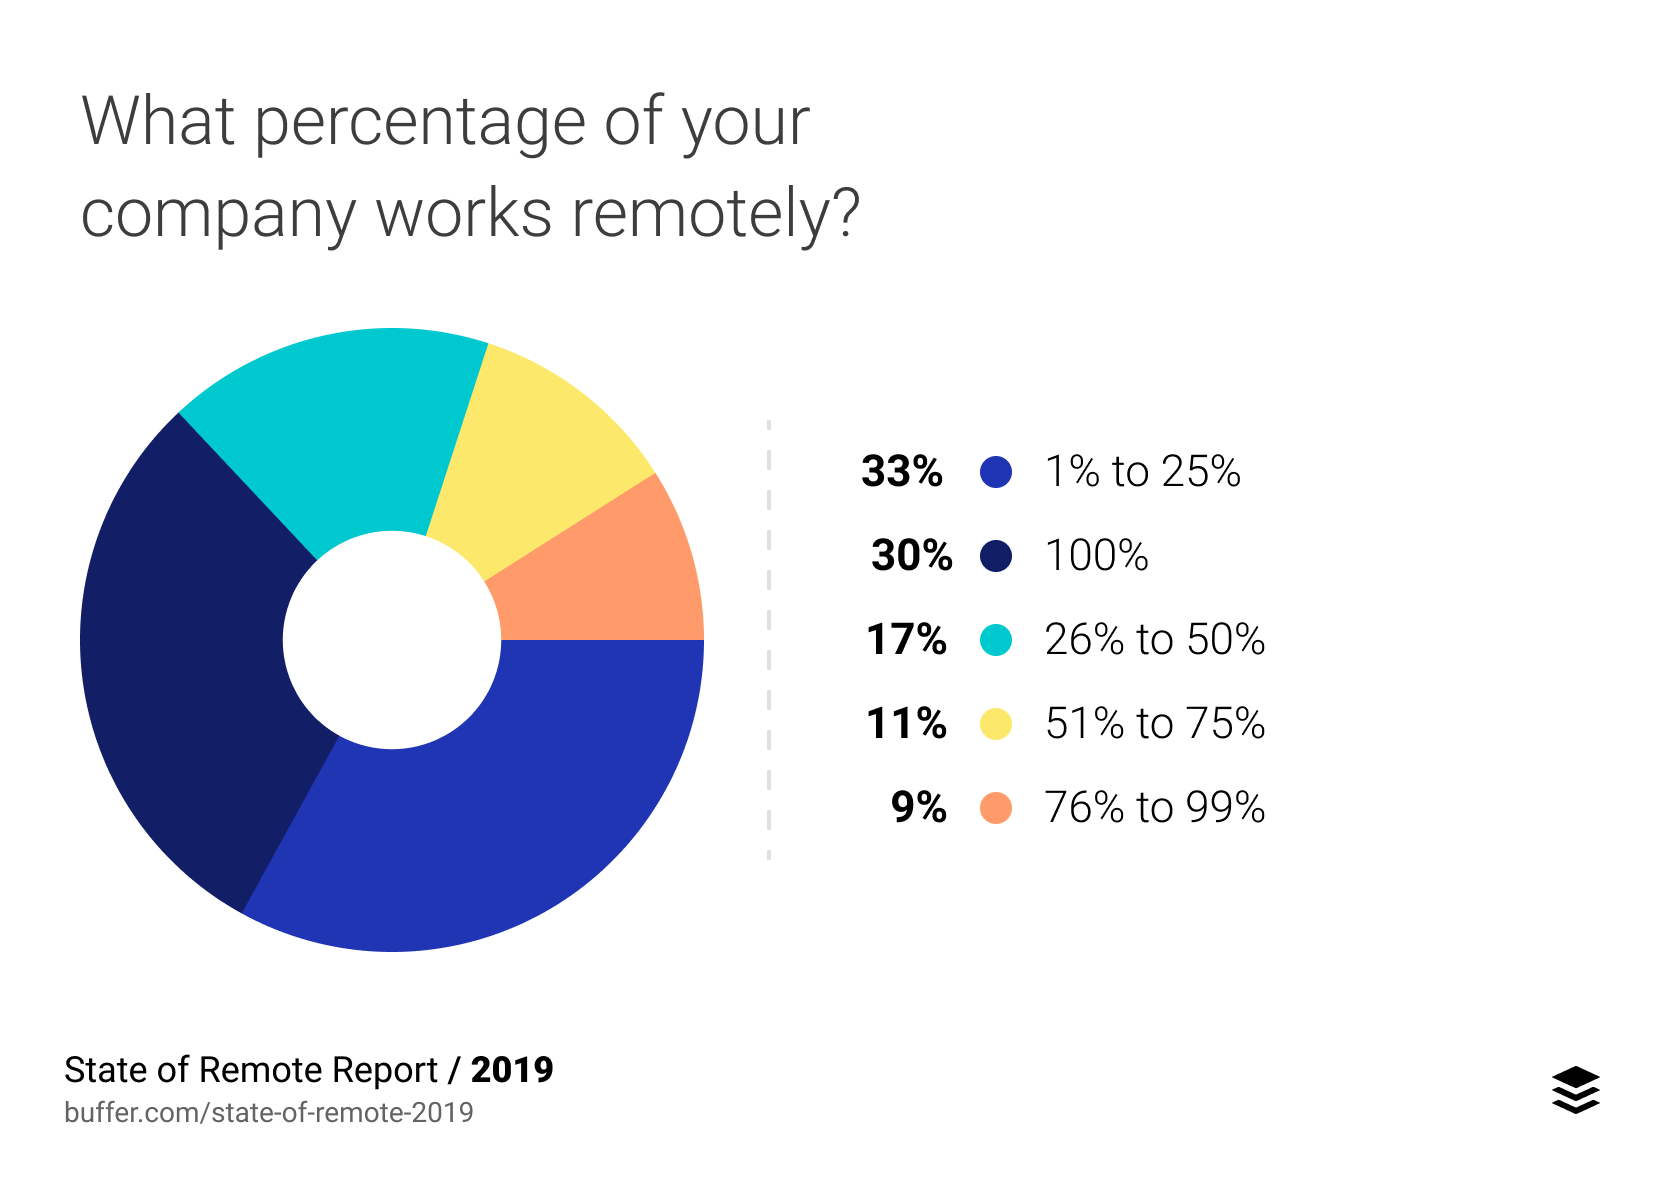 What percentage of your company works remotely?